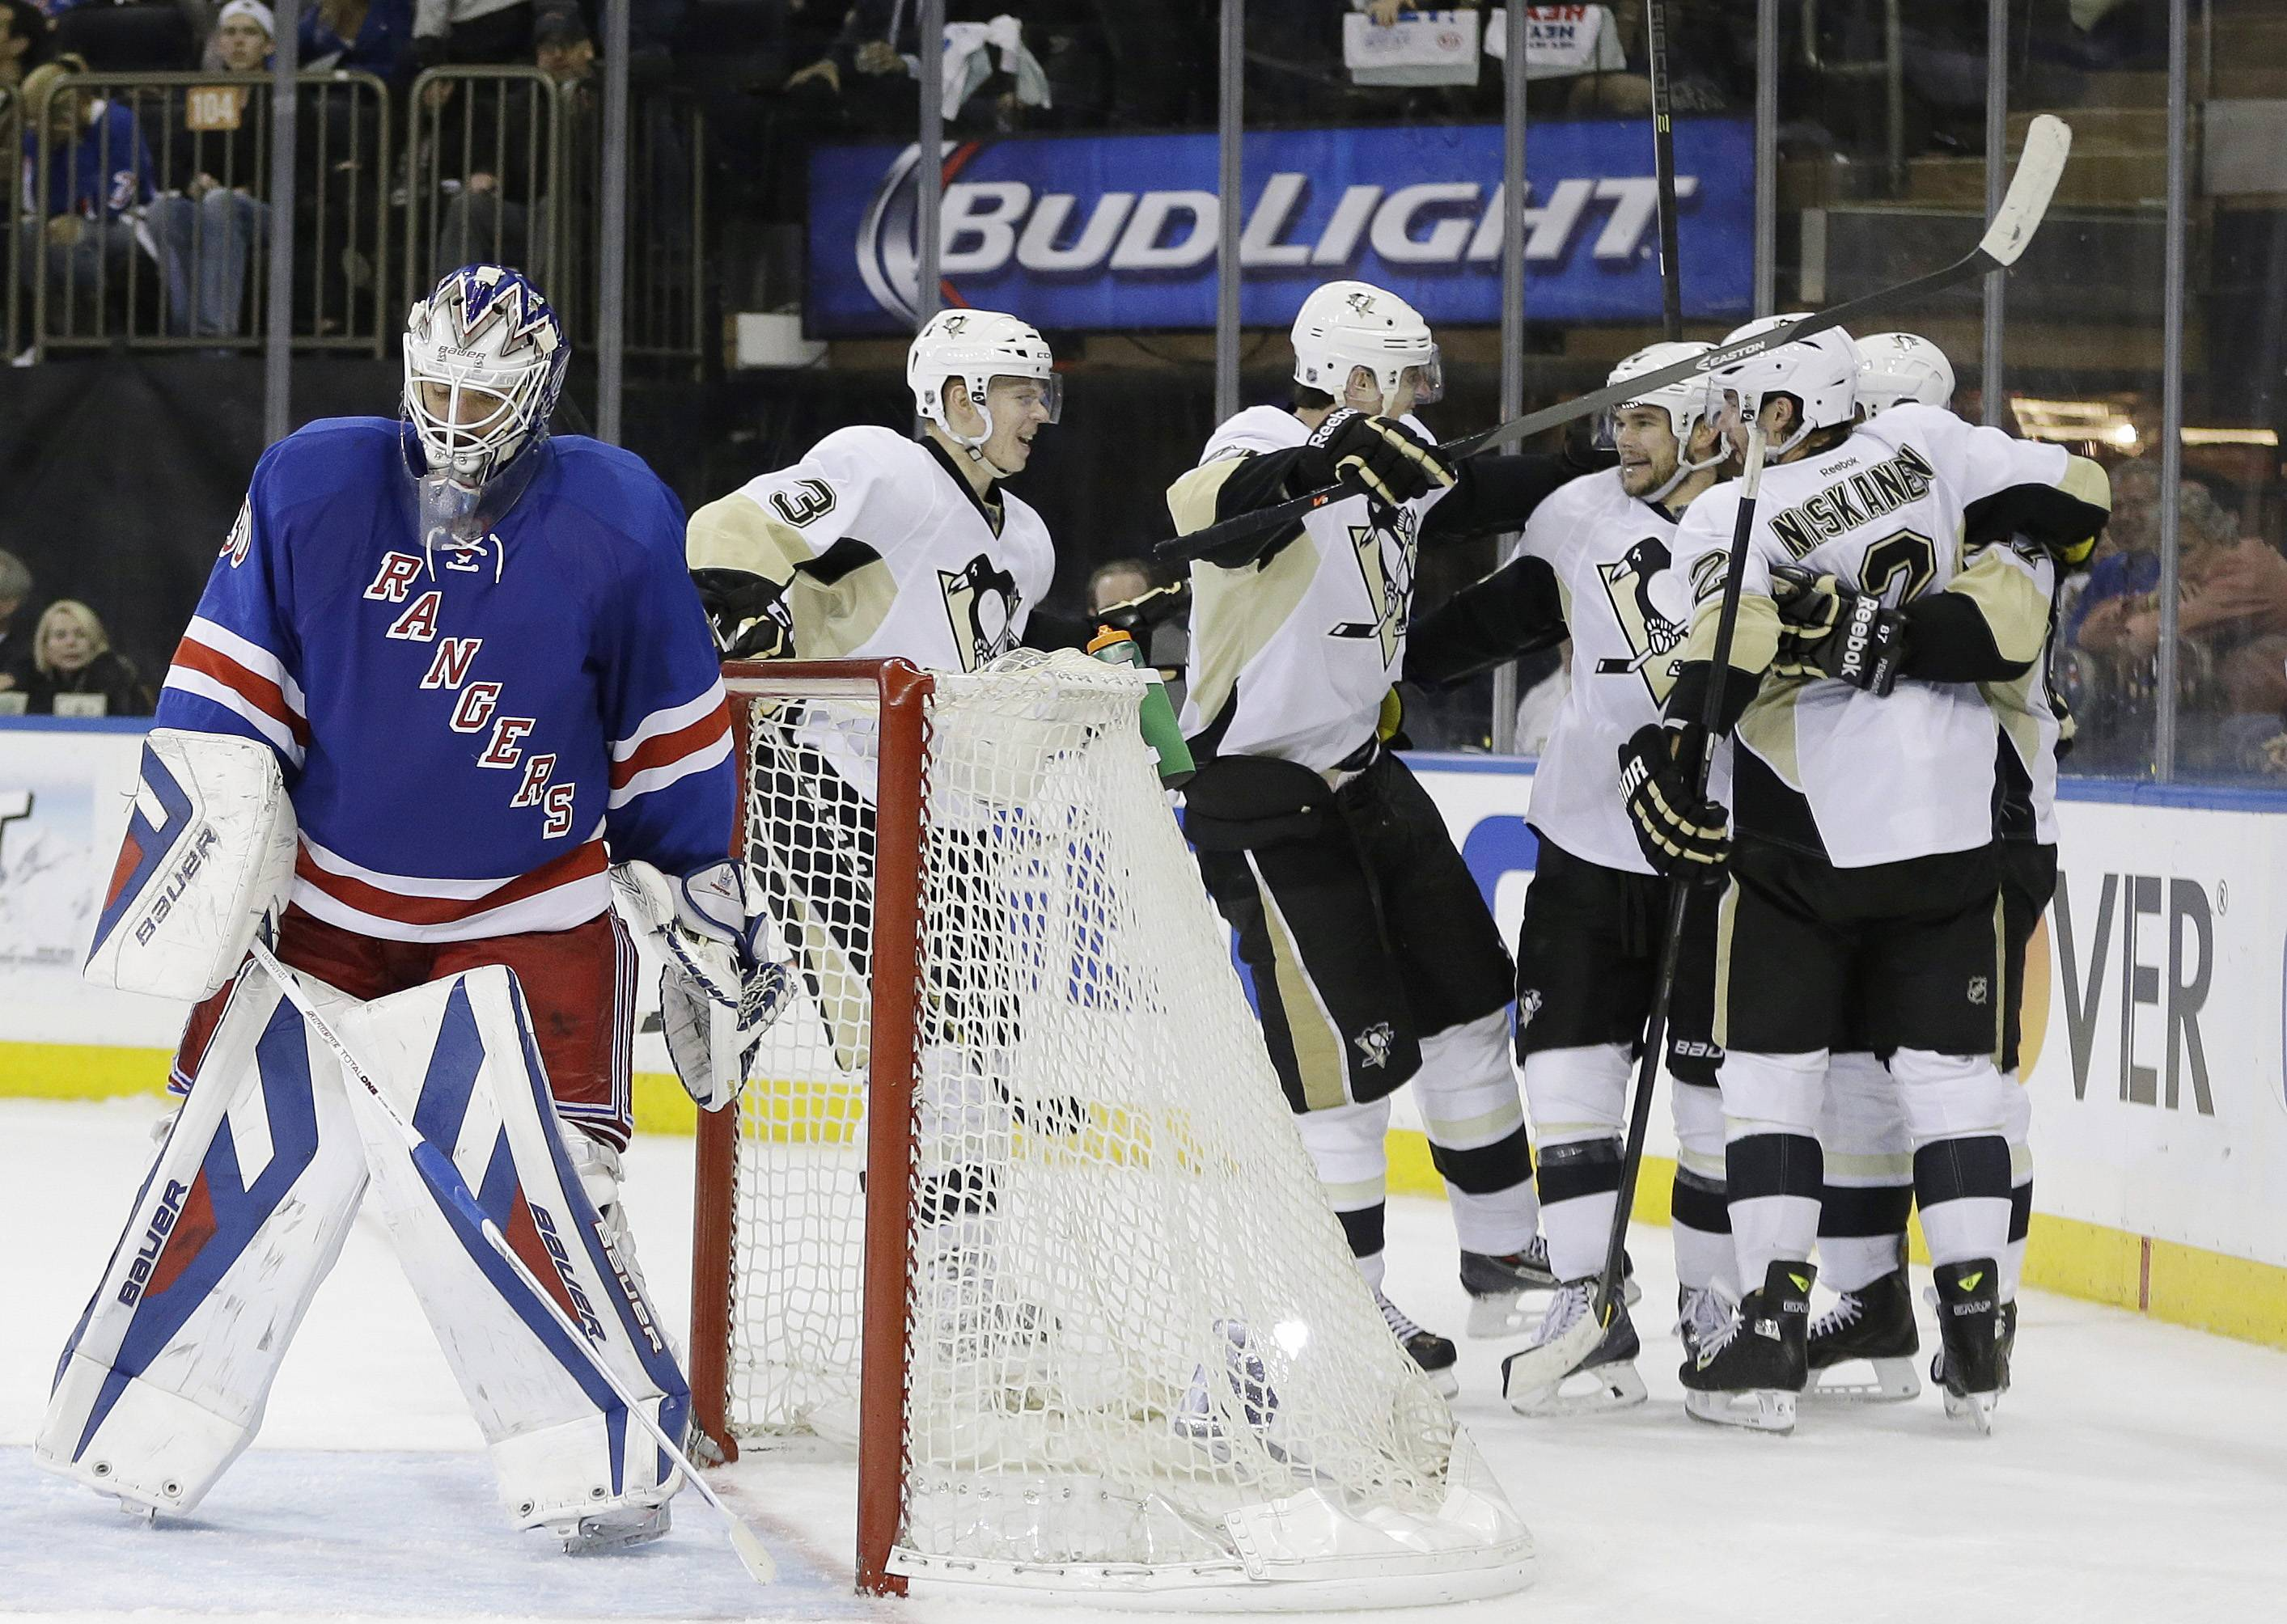 New York Rangers goalie Henrik Lundqvist, left, of Sweden, reacts as the Pittsburgh Penguins celebrate a goal by Chris Kunitz during the third period of a second-round NHL Stanley Cup hockey playoff series Wednesday, May 7, 2014, in New York. The Penguins won 4-2.